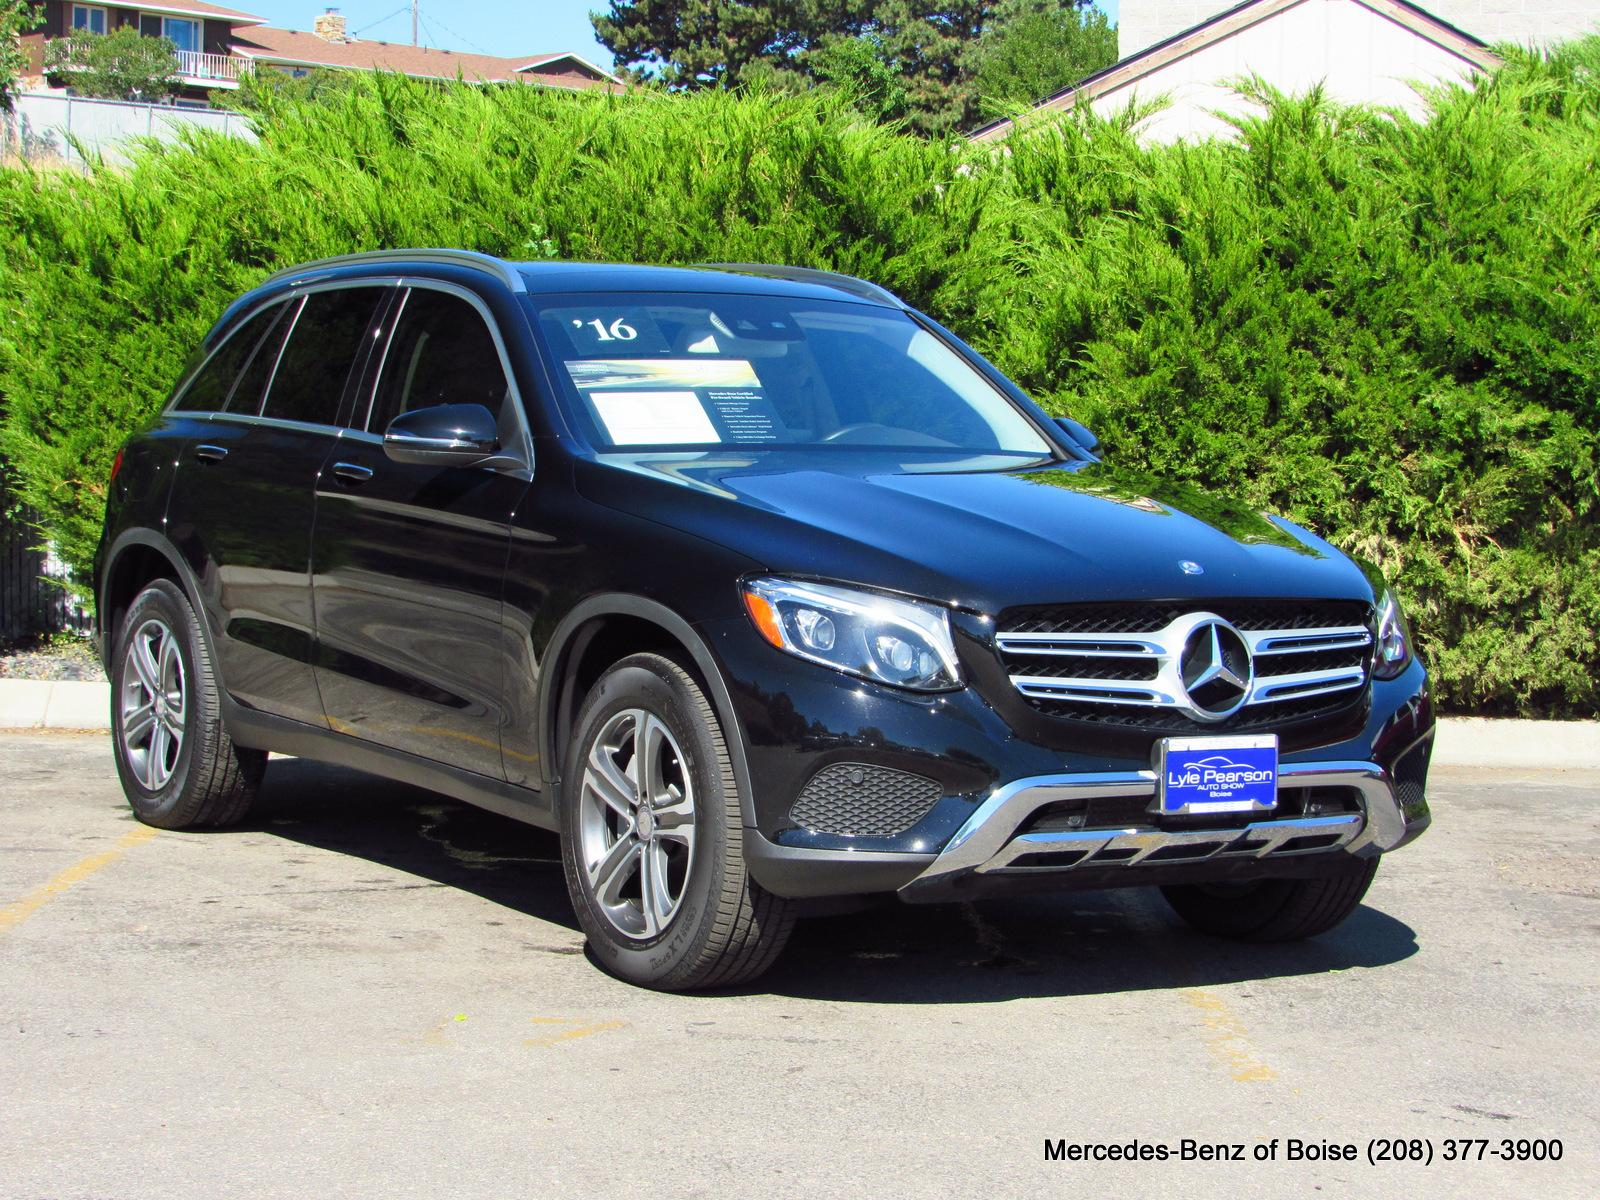 Pre-Owned 2016 Mercedes-Benz GLC 4MATIC 4dr GLC 300